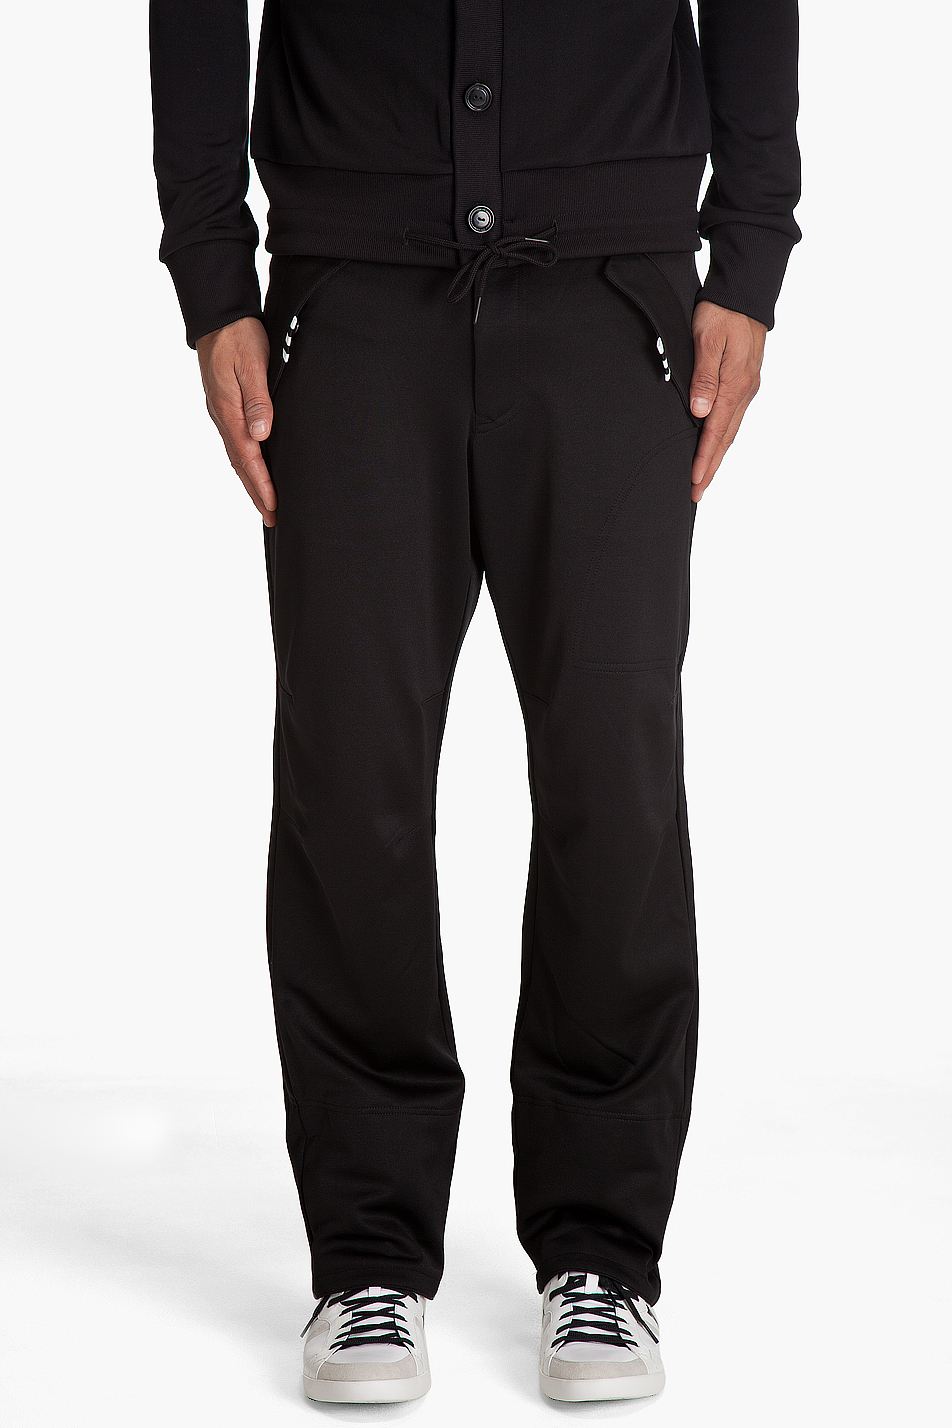 Buy Adidas Women's Black Originals 3 Stripe Cuffed Sweat Pants. Similar products also available. SALE now on!Price: $